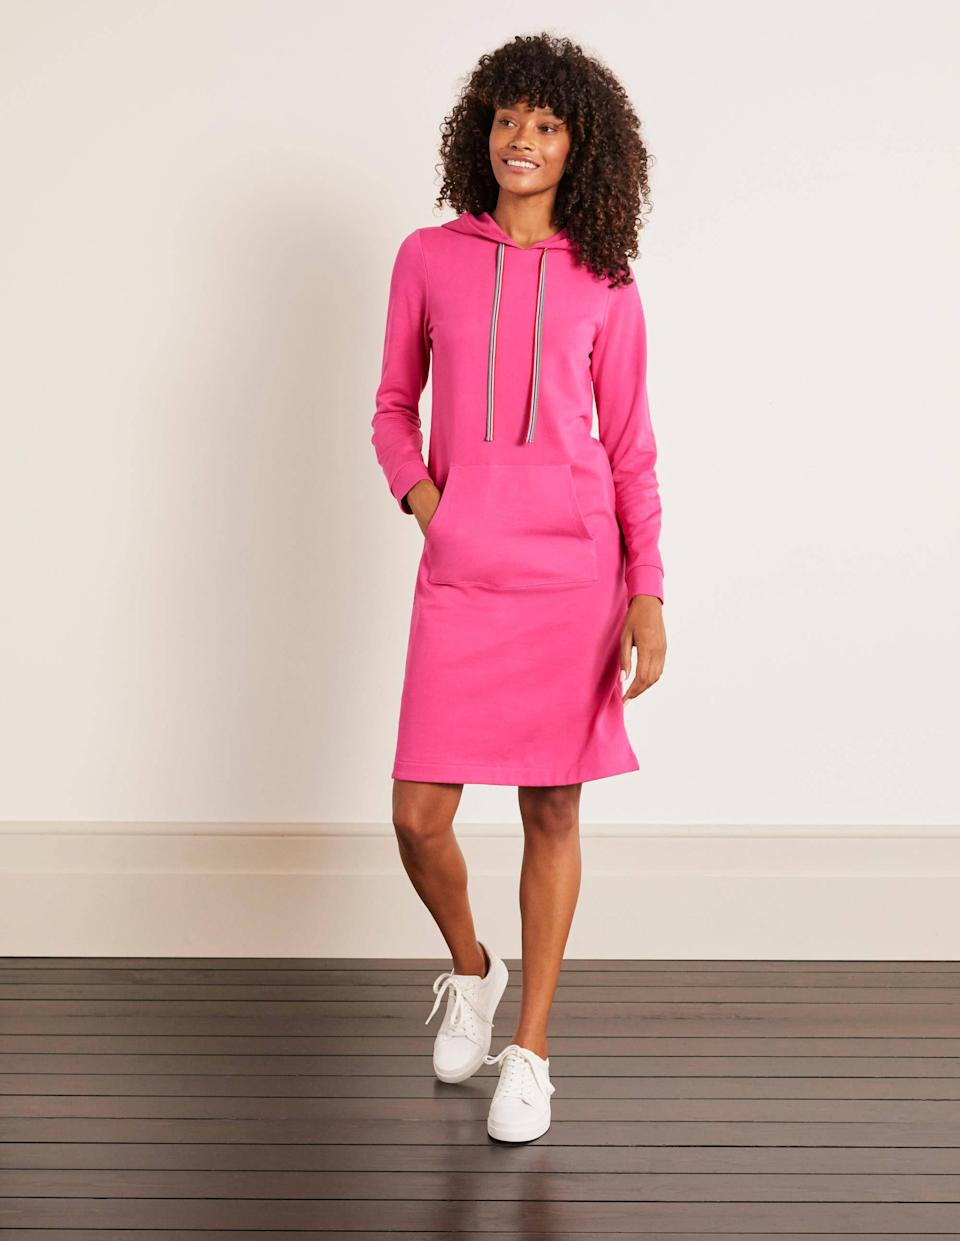 Oriel Sweatshirt Dress. (Boden)